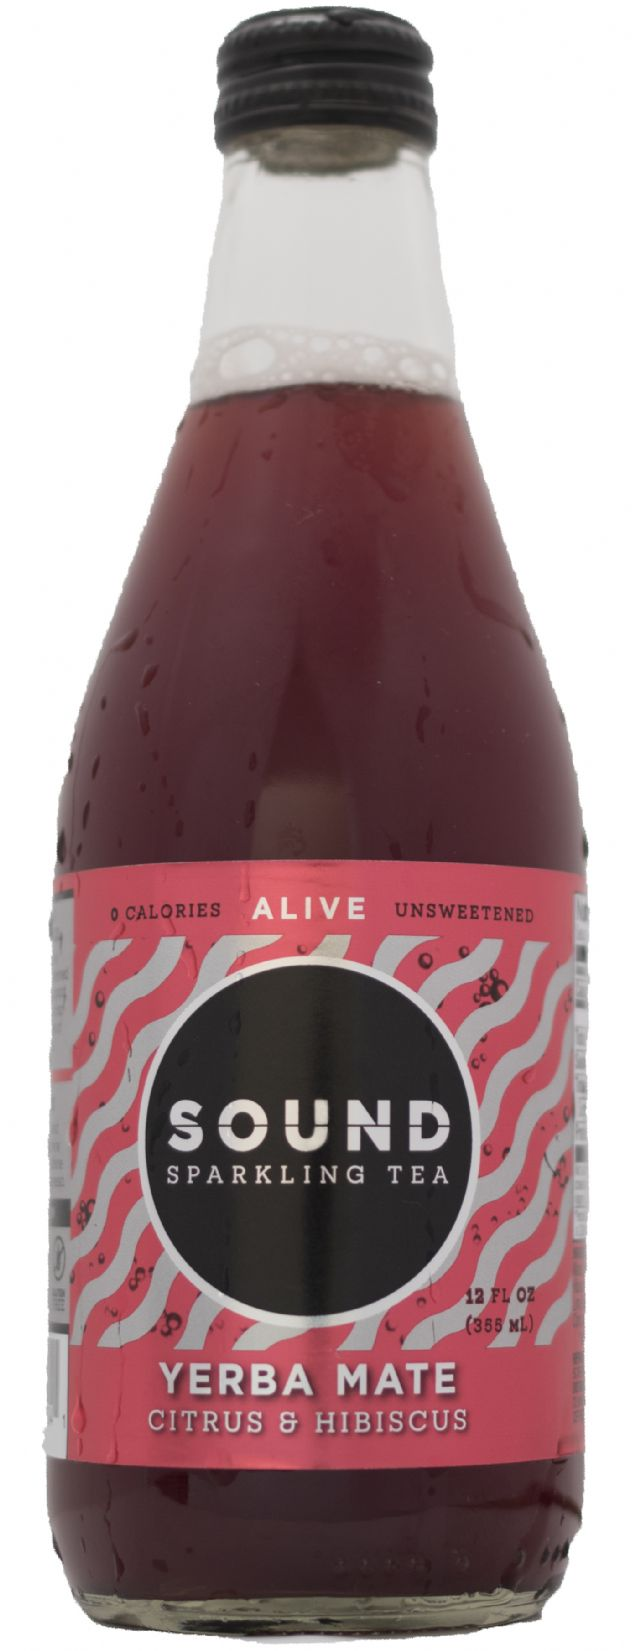 Sound Sparkling Tea: Sound Alive